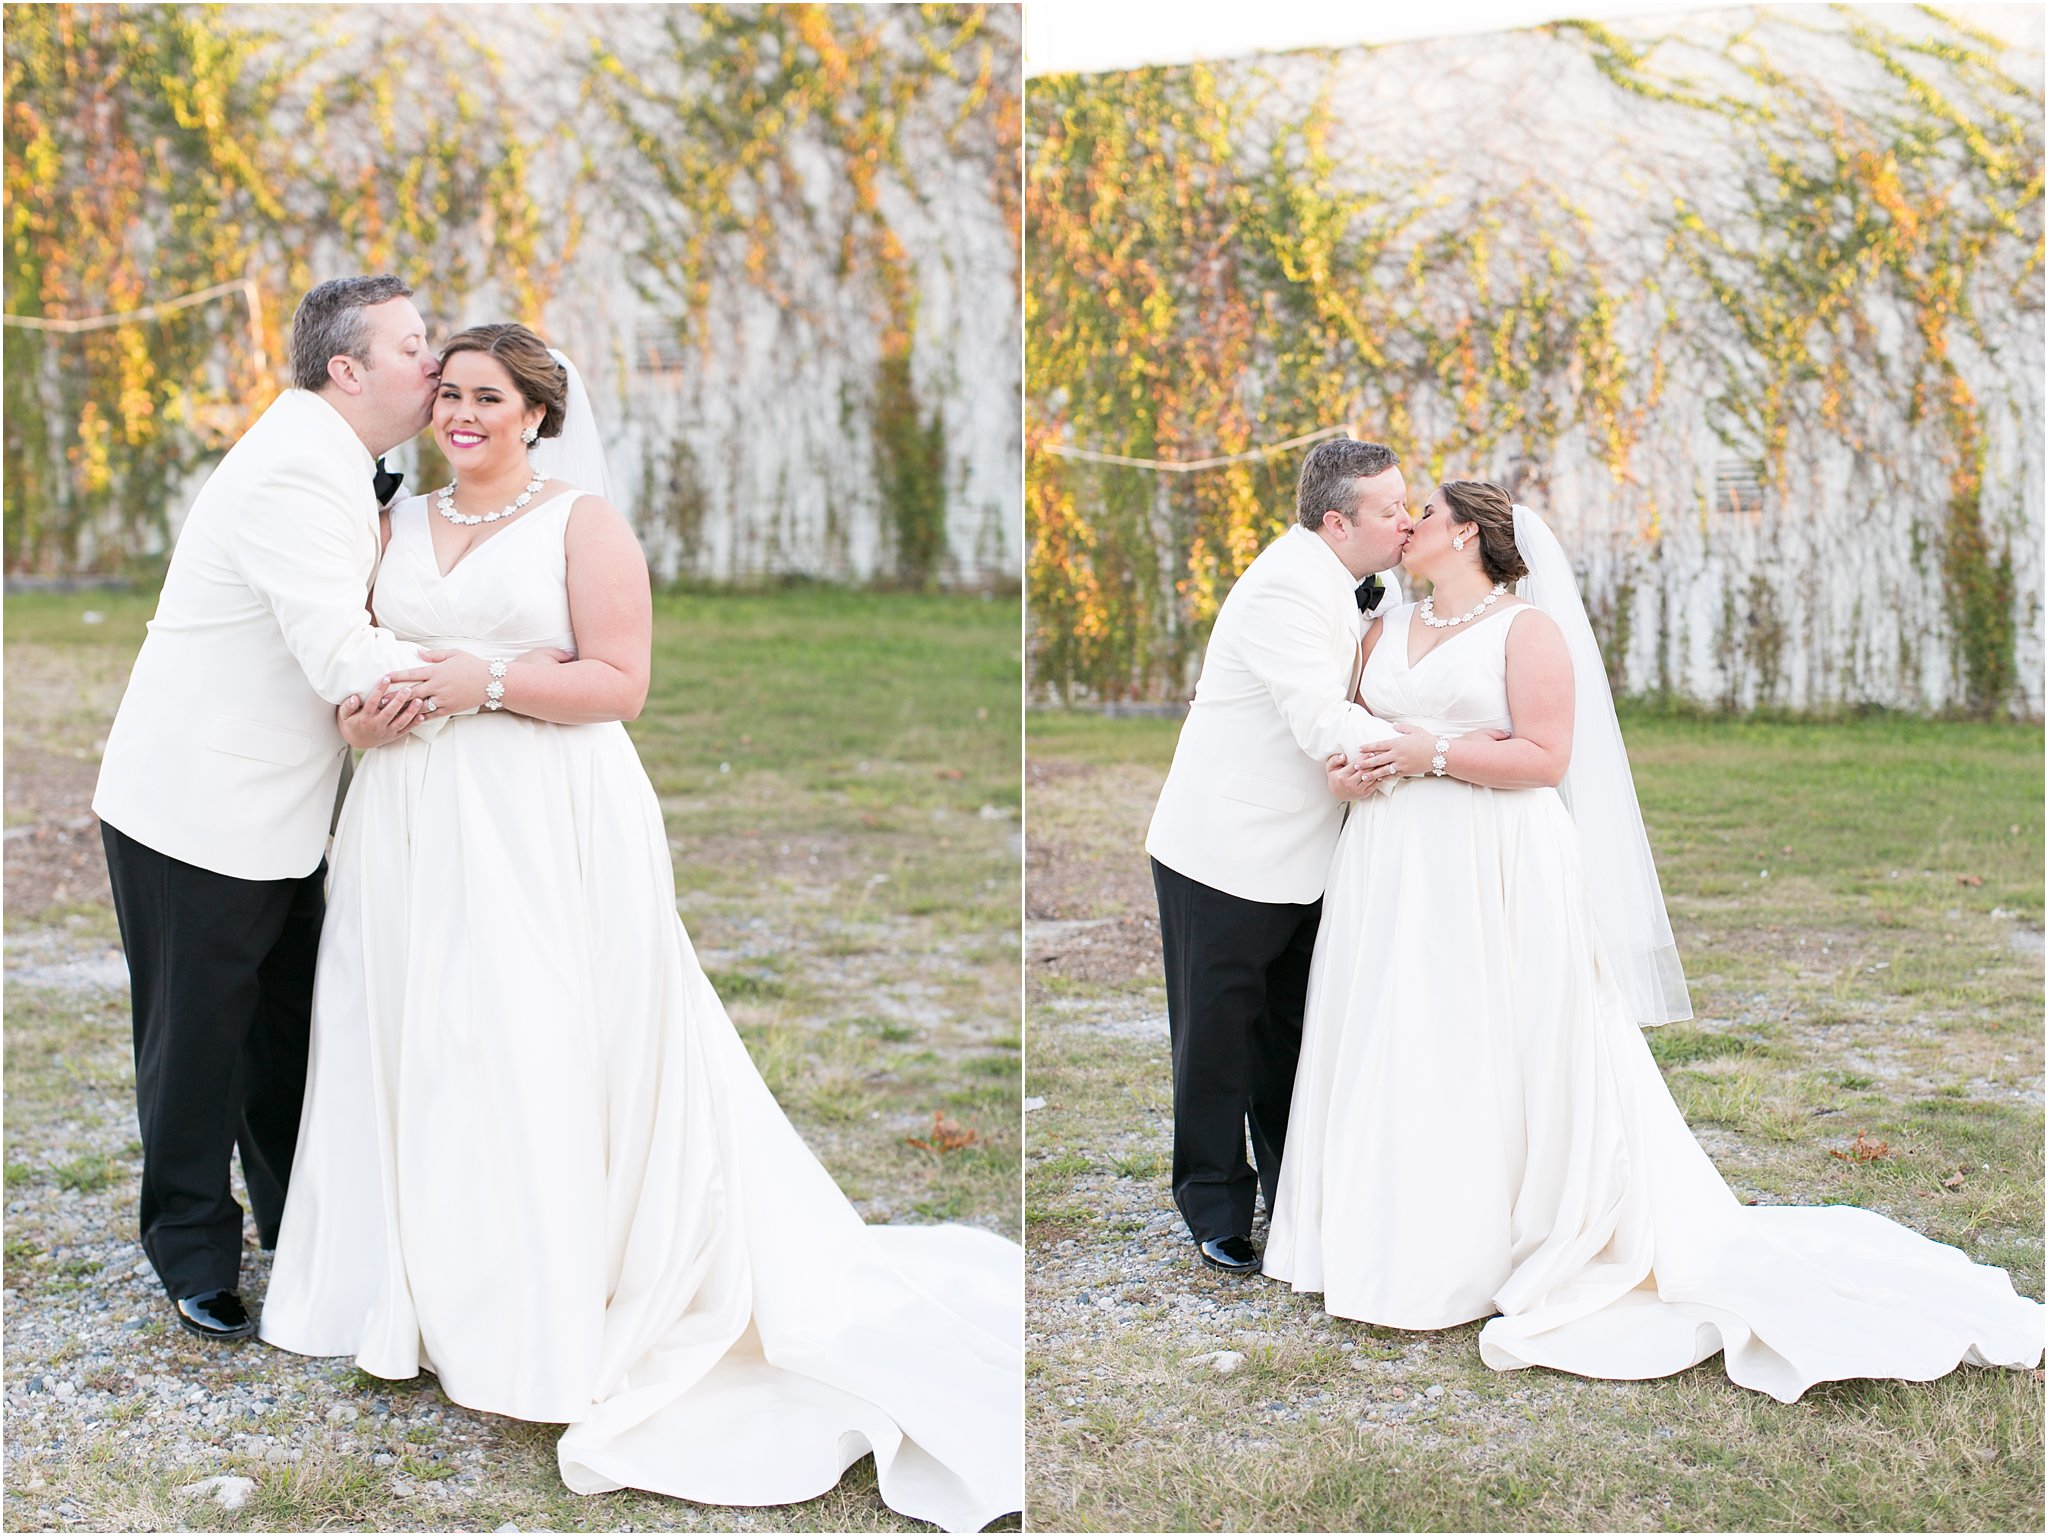 va_jessica_ryan_photography_virginia_wedding_norfolk_harrison_opera_house_norfolk_arts_district_portraits_3819